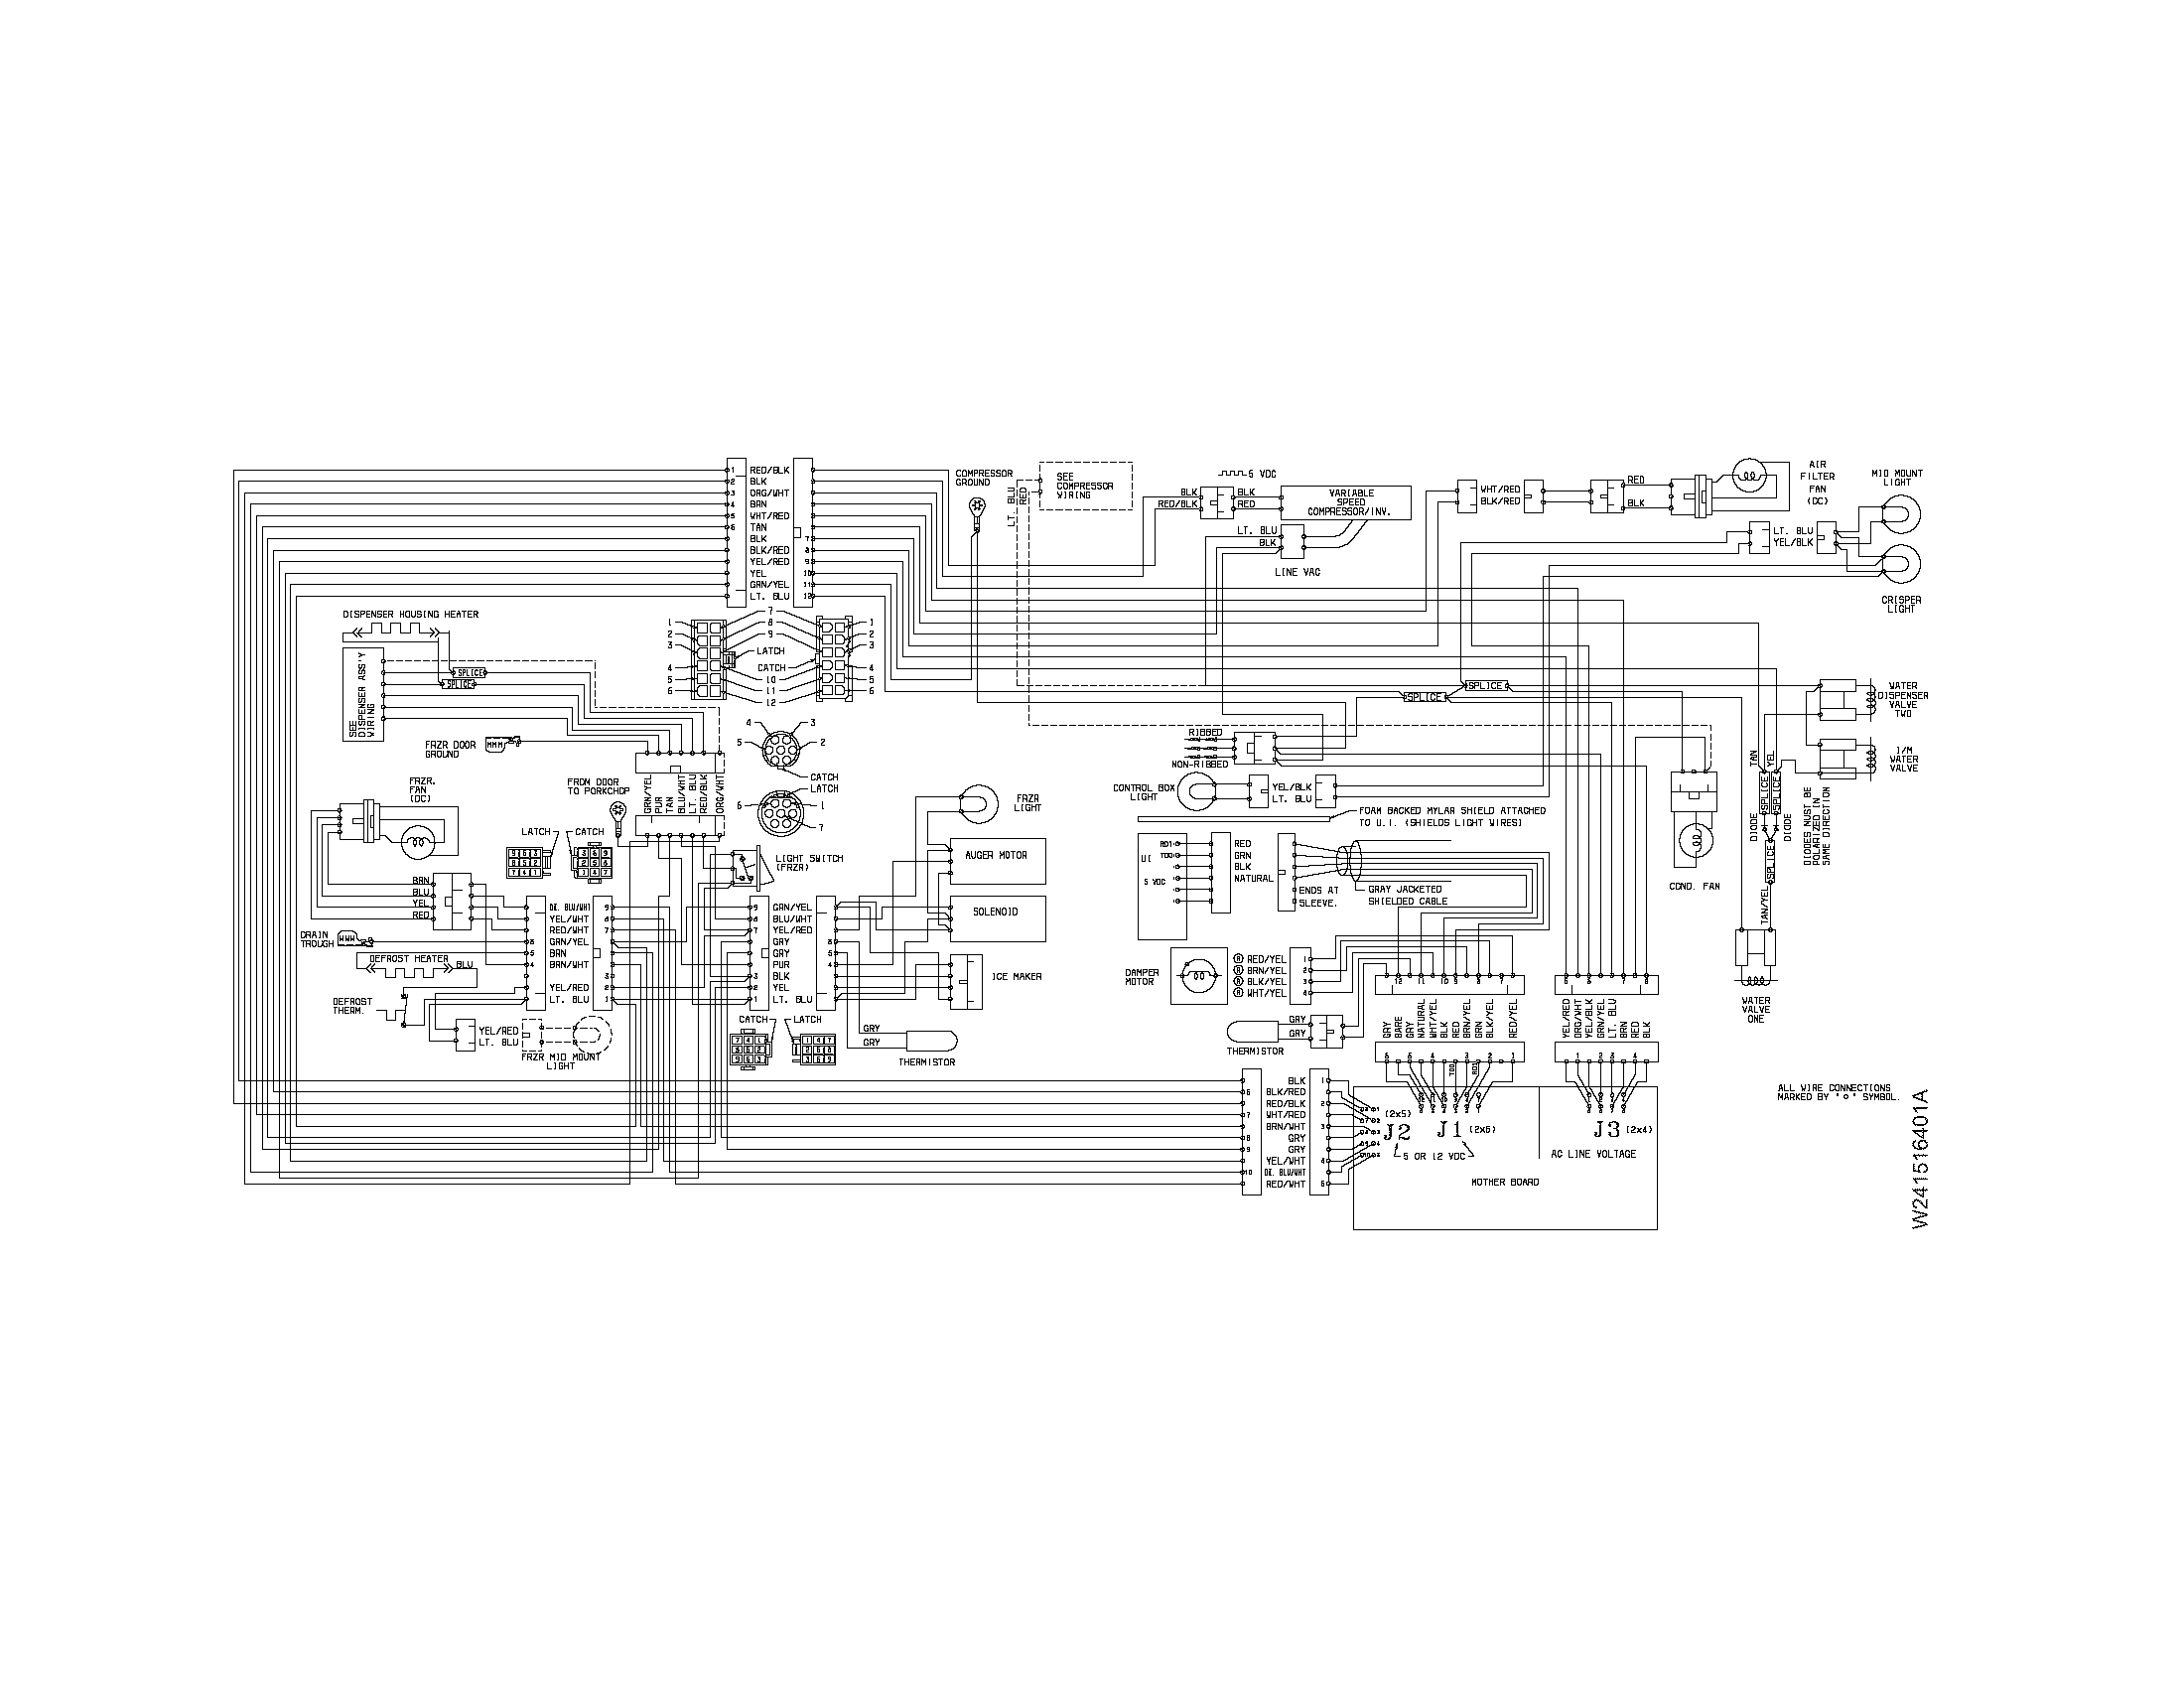 electrolux double door refrigerator wiring diagram easy of plant cell freezer parts model